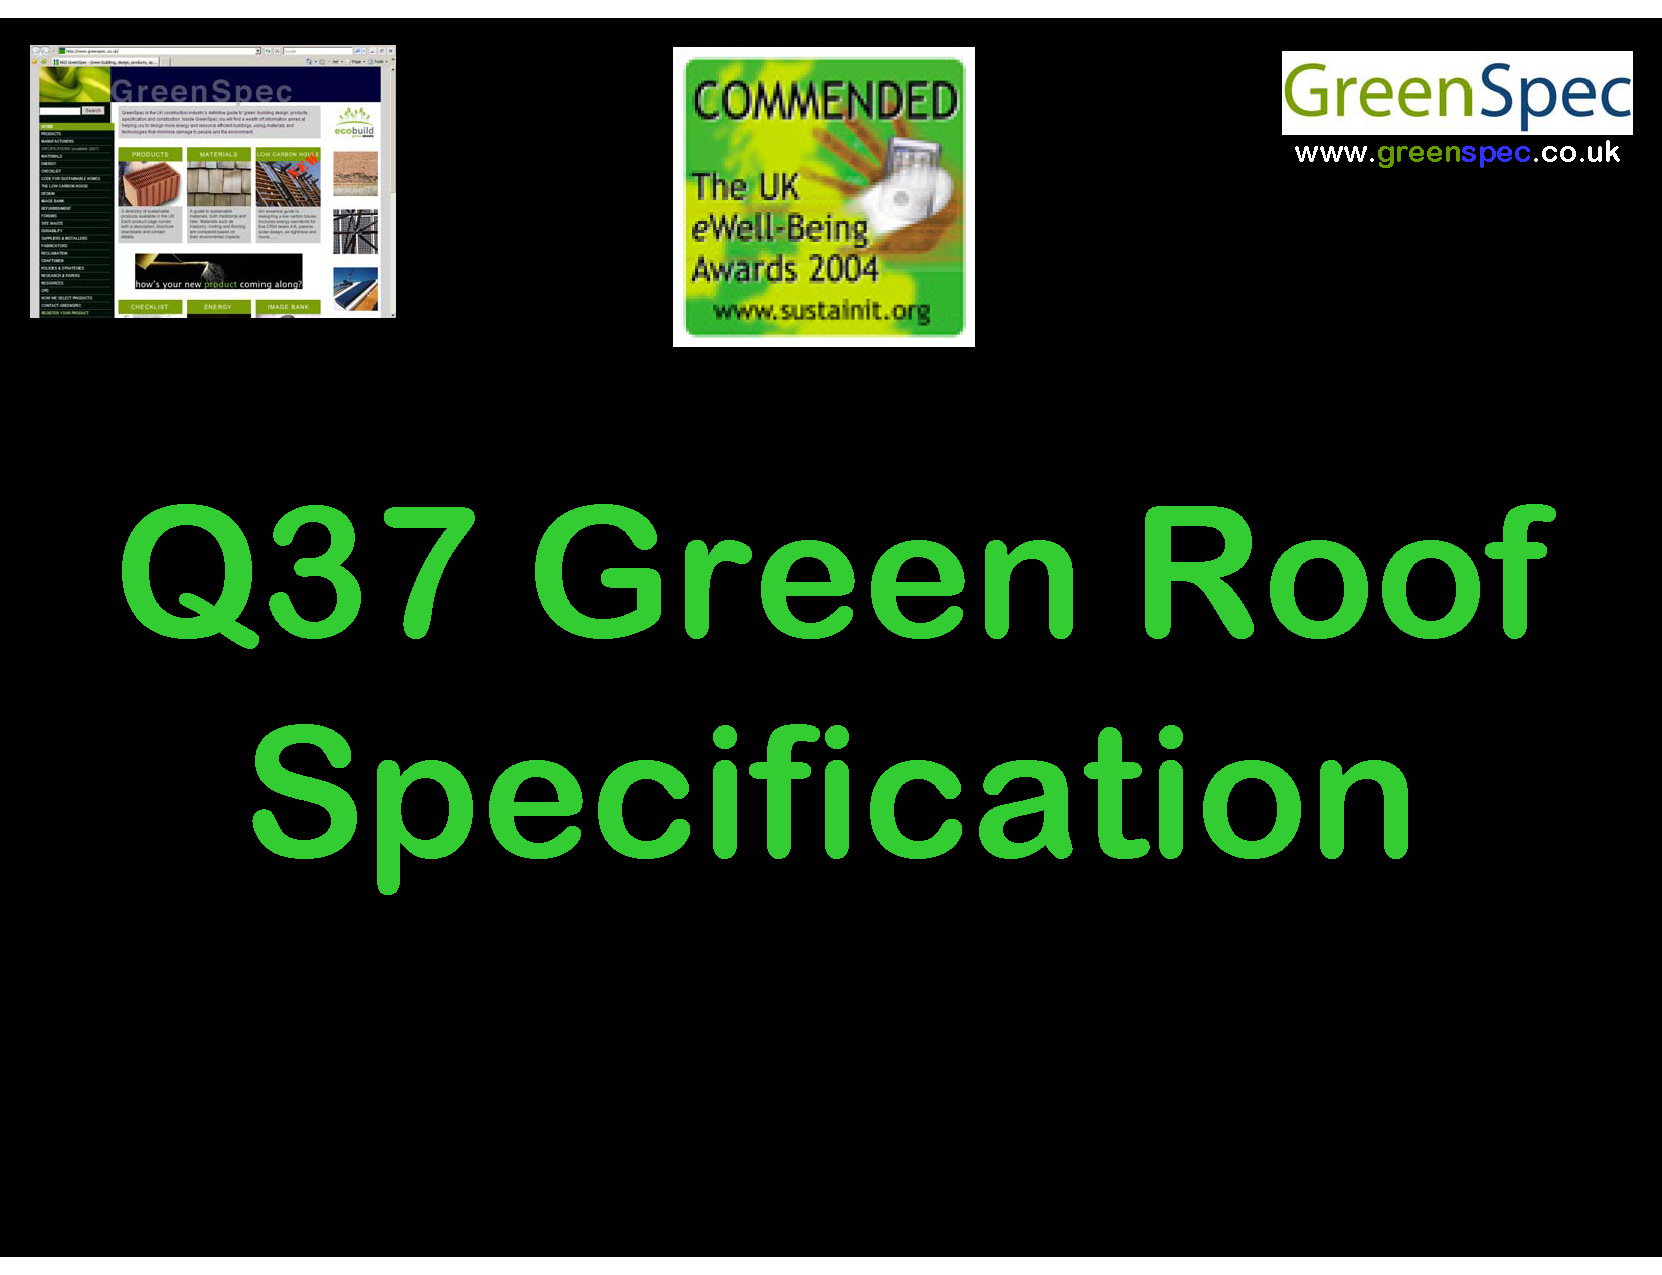 Q37GreenRoofSpecificationCDHandout